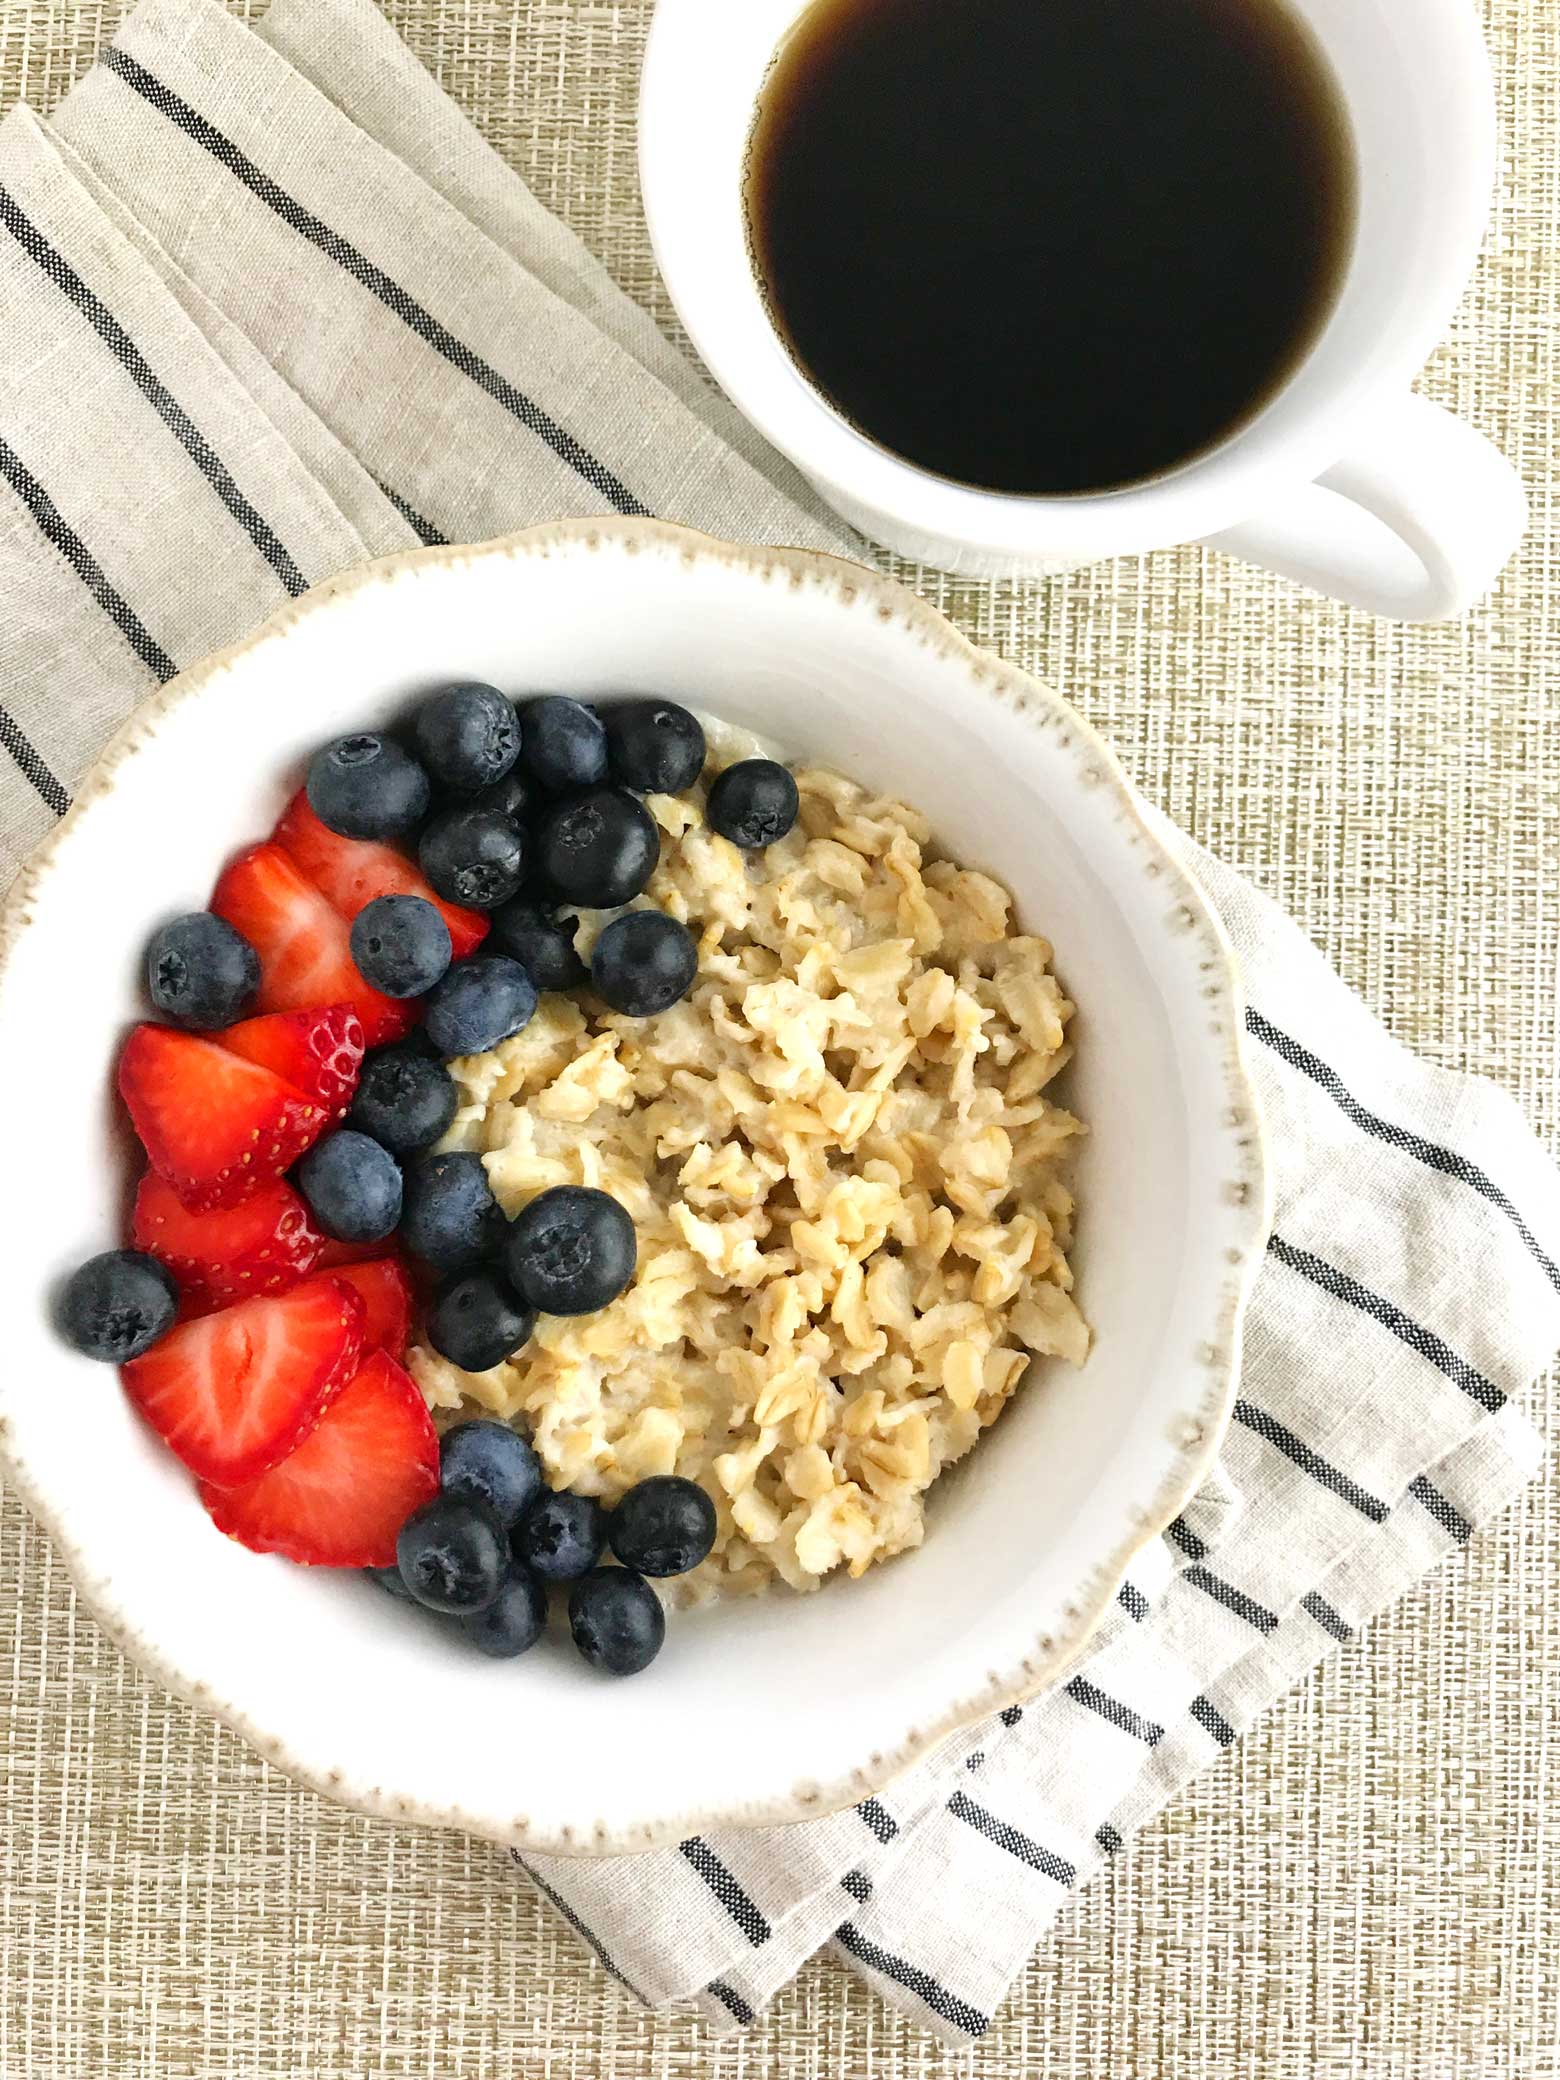 Shows oatmeal with fresh berries